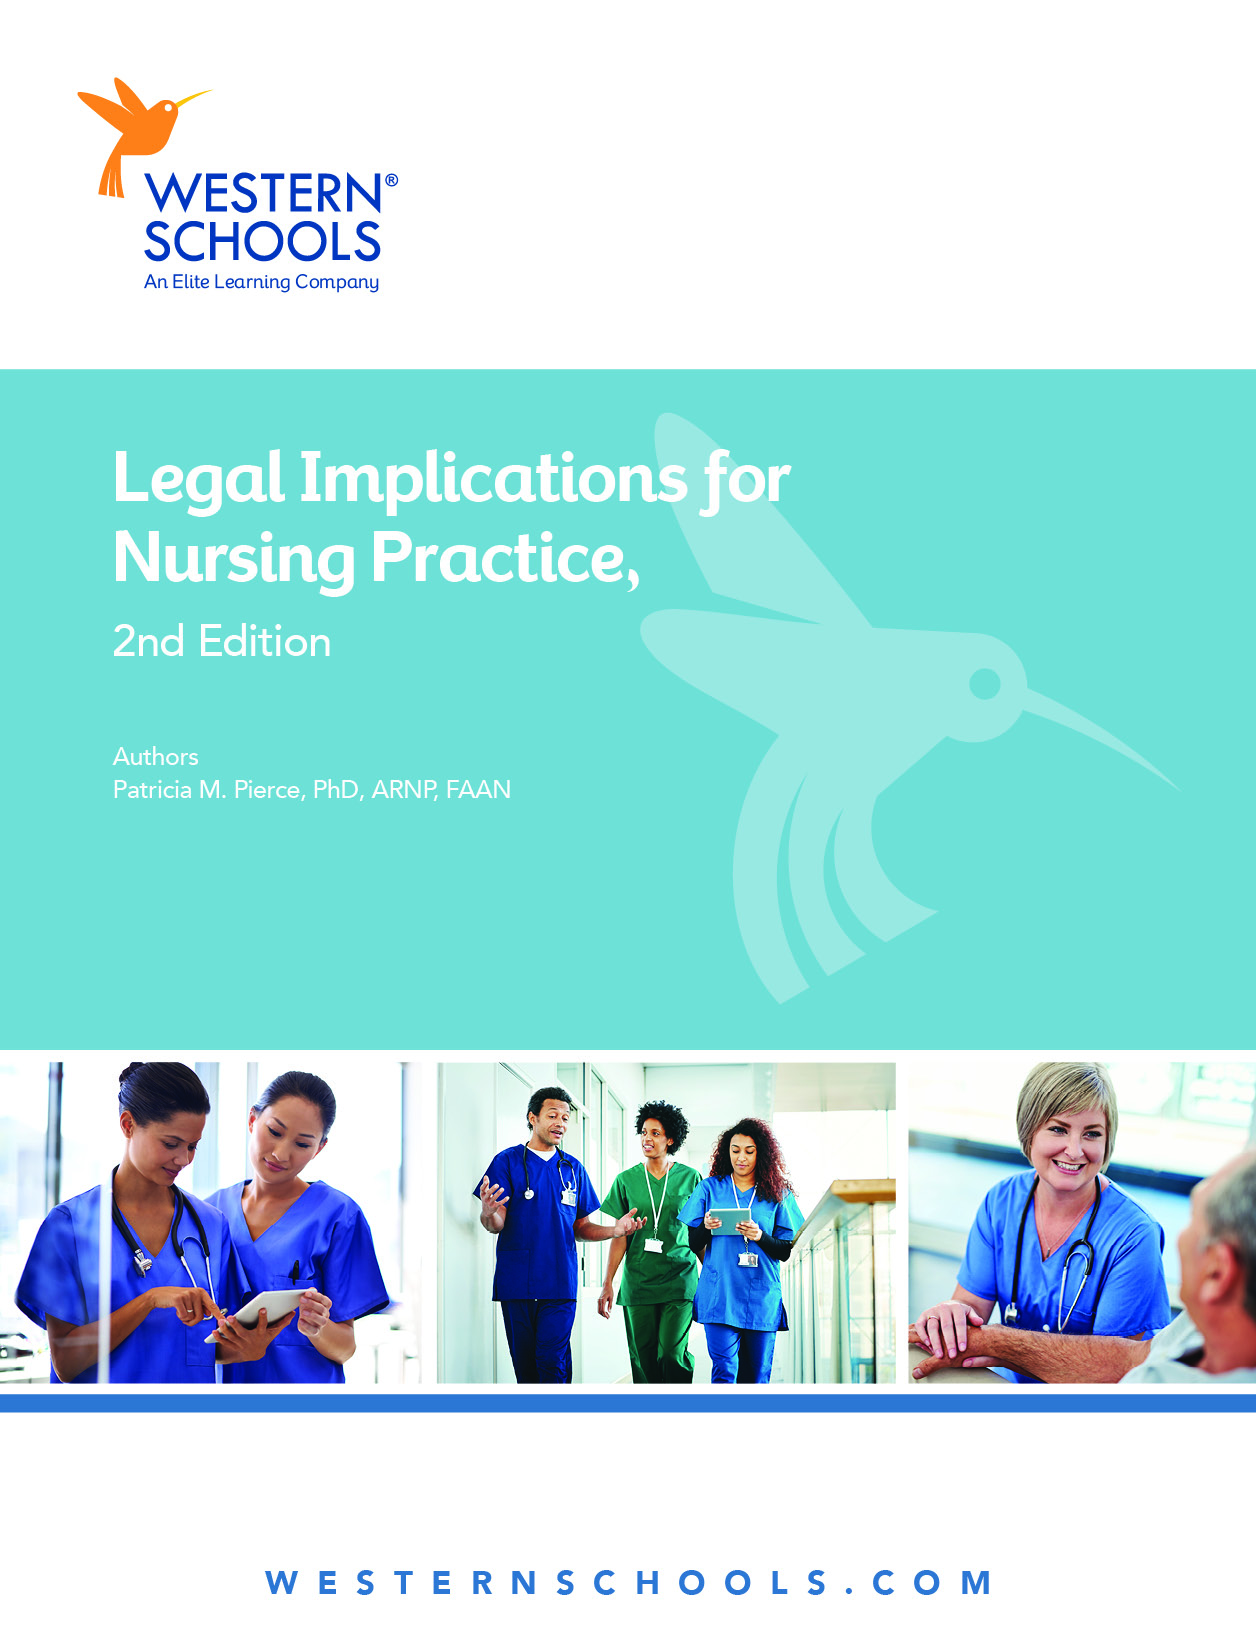 Legal Implications for Nursing Practice